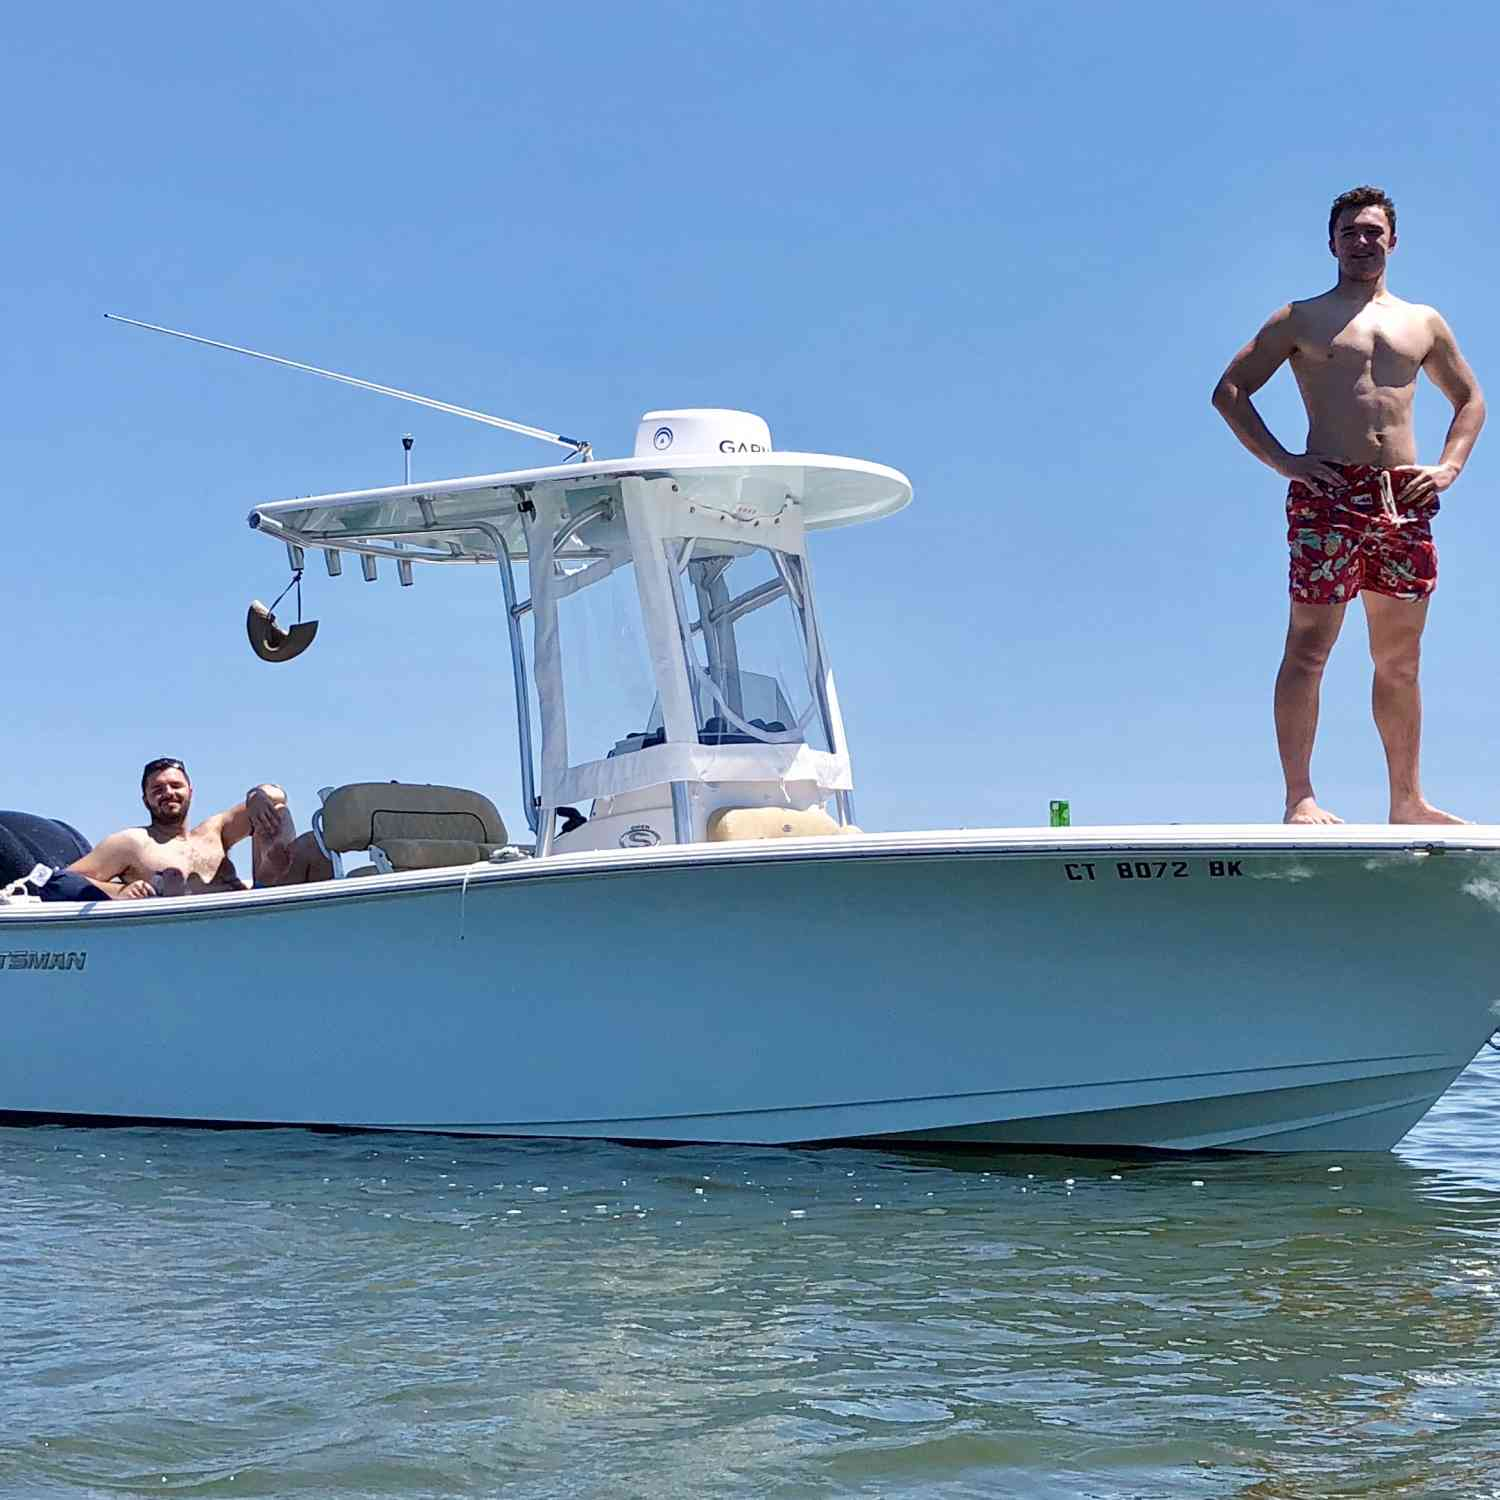 Title: Summertime! - On board their Sportsman Open 232 Center Console - Location: Niantic River. Participating in the Photo Contest #SportsmanNovember2019